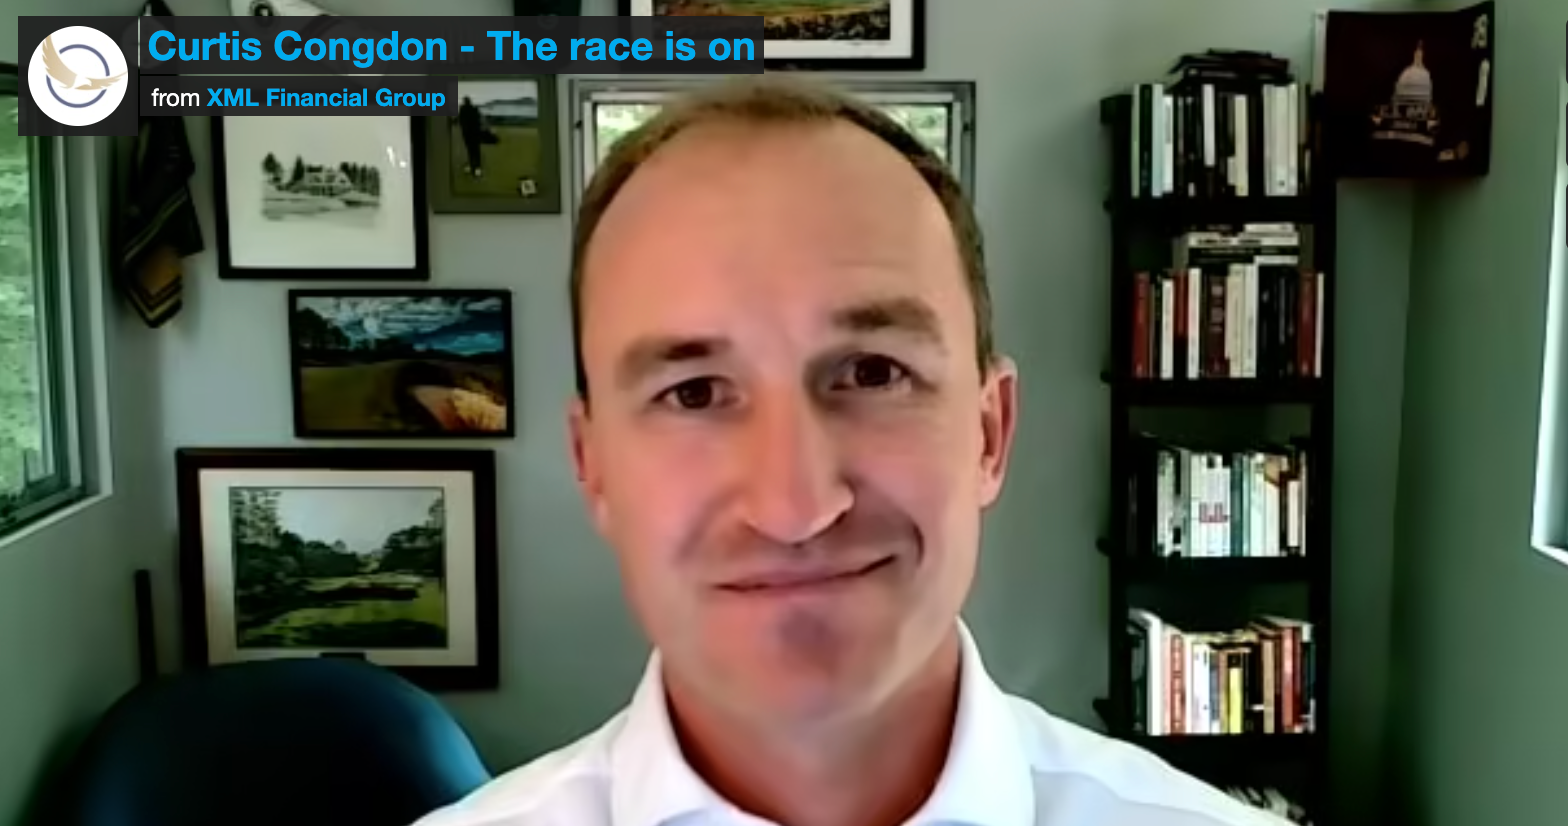 XML Wealth Insights: The race is on